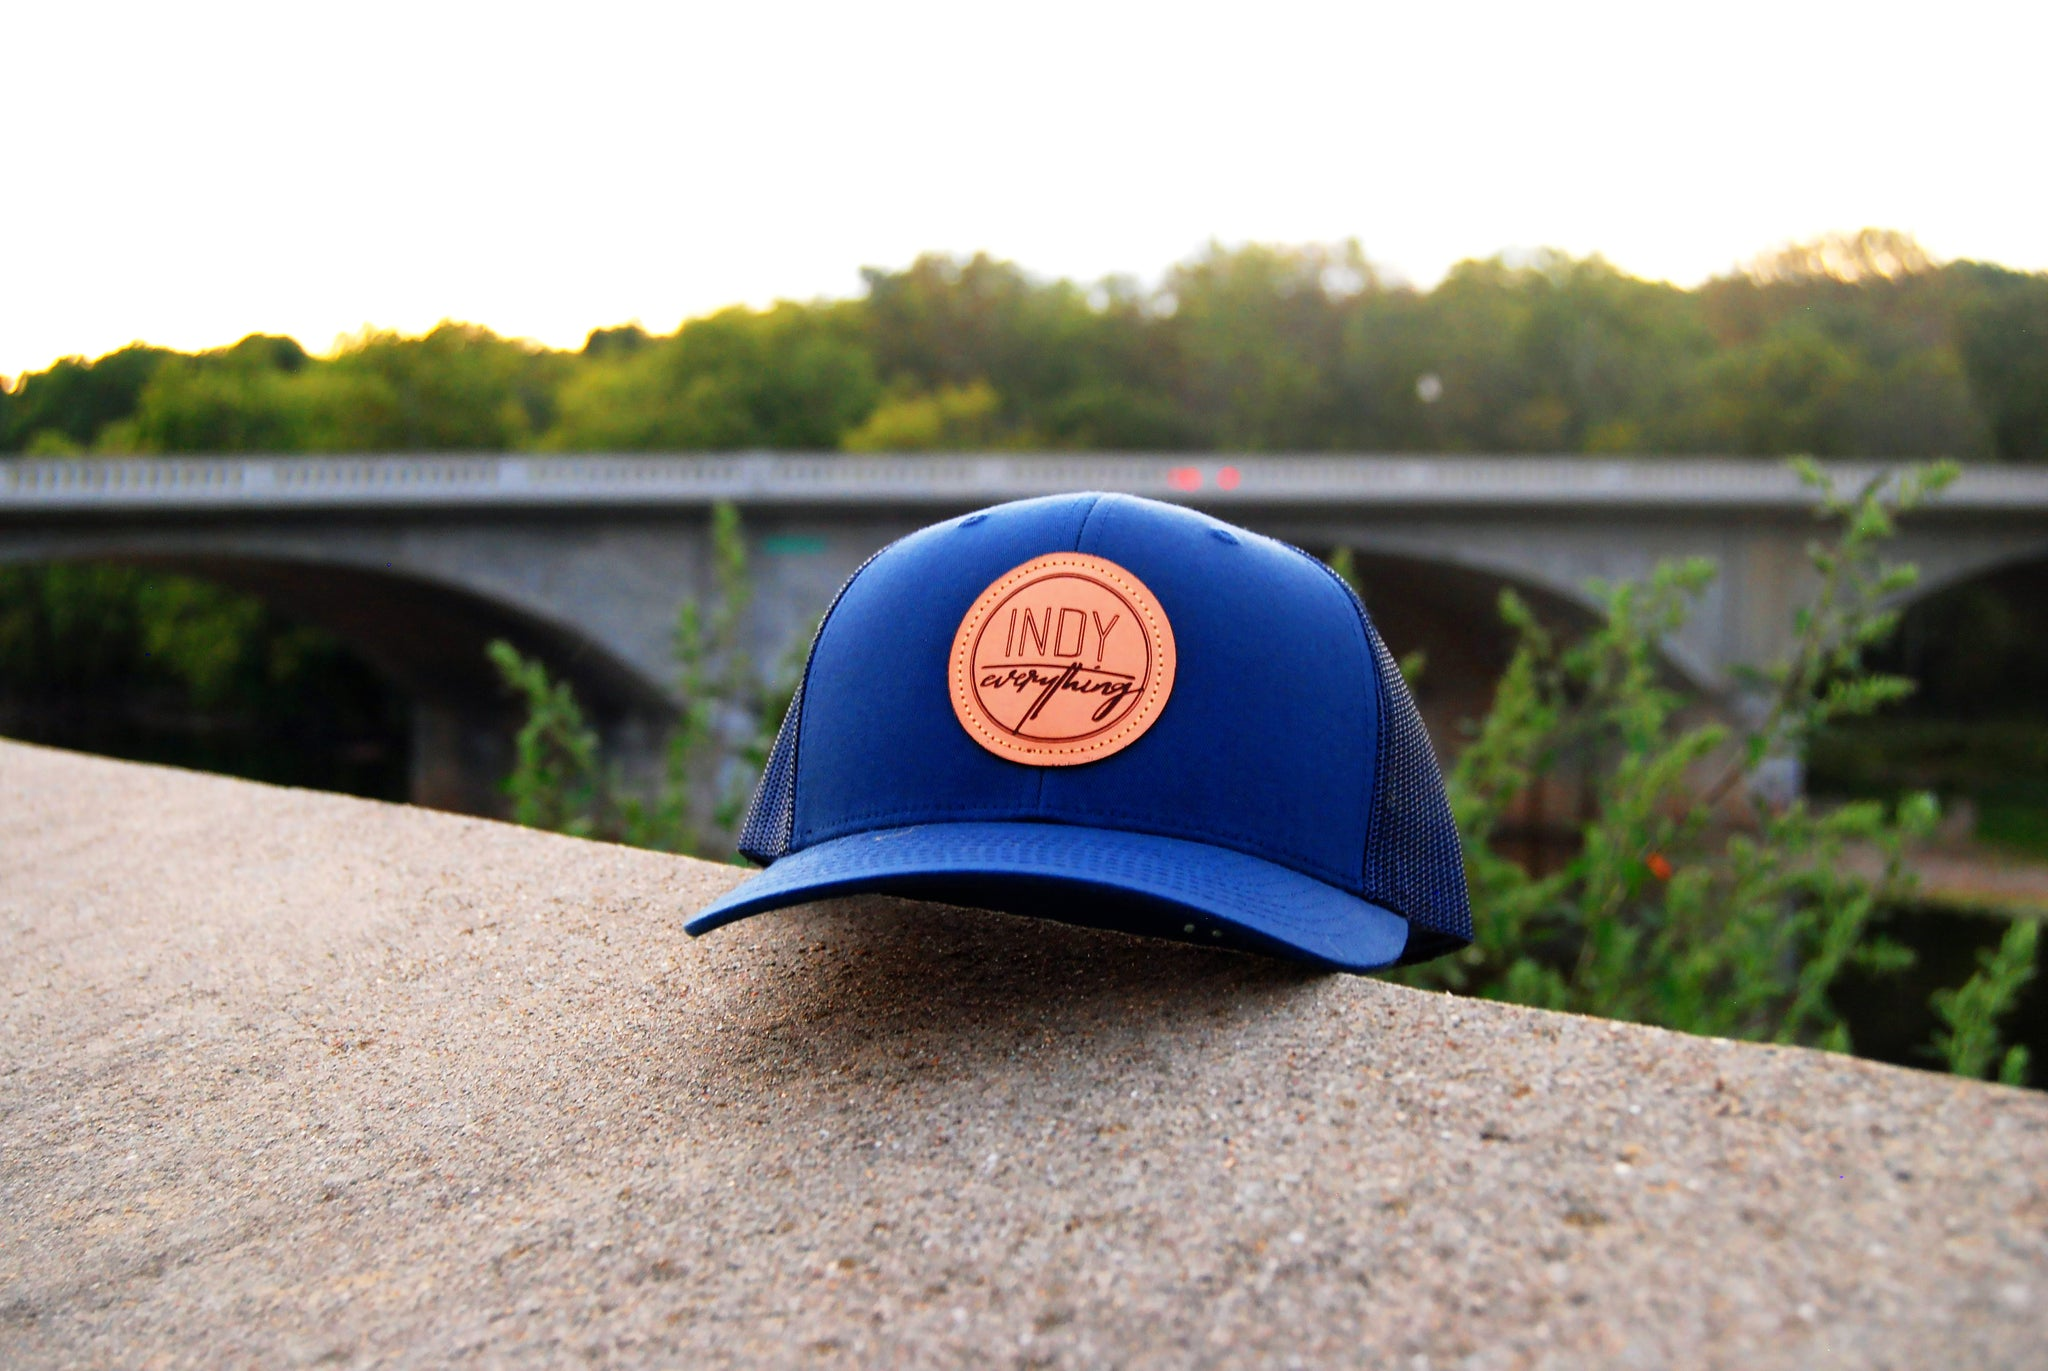 TRUCKER HAT - NAVY AND NAVY W/ LEATHER BADGE - Indy Over Everything